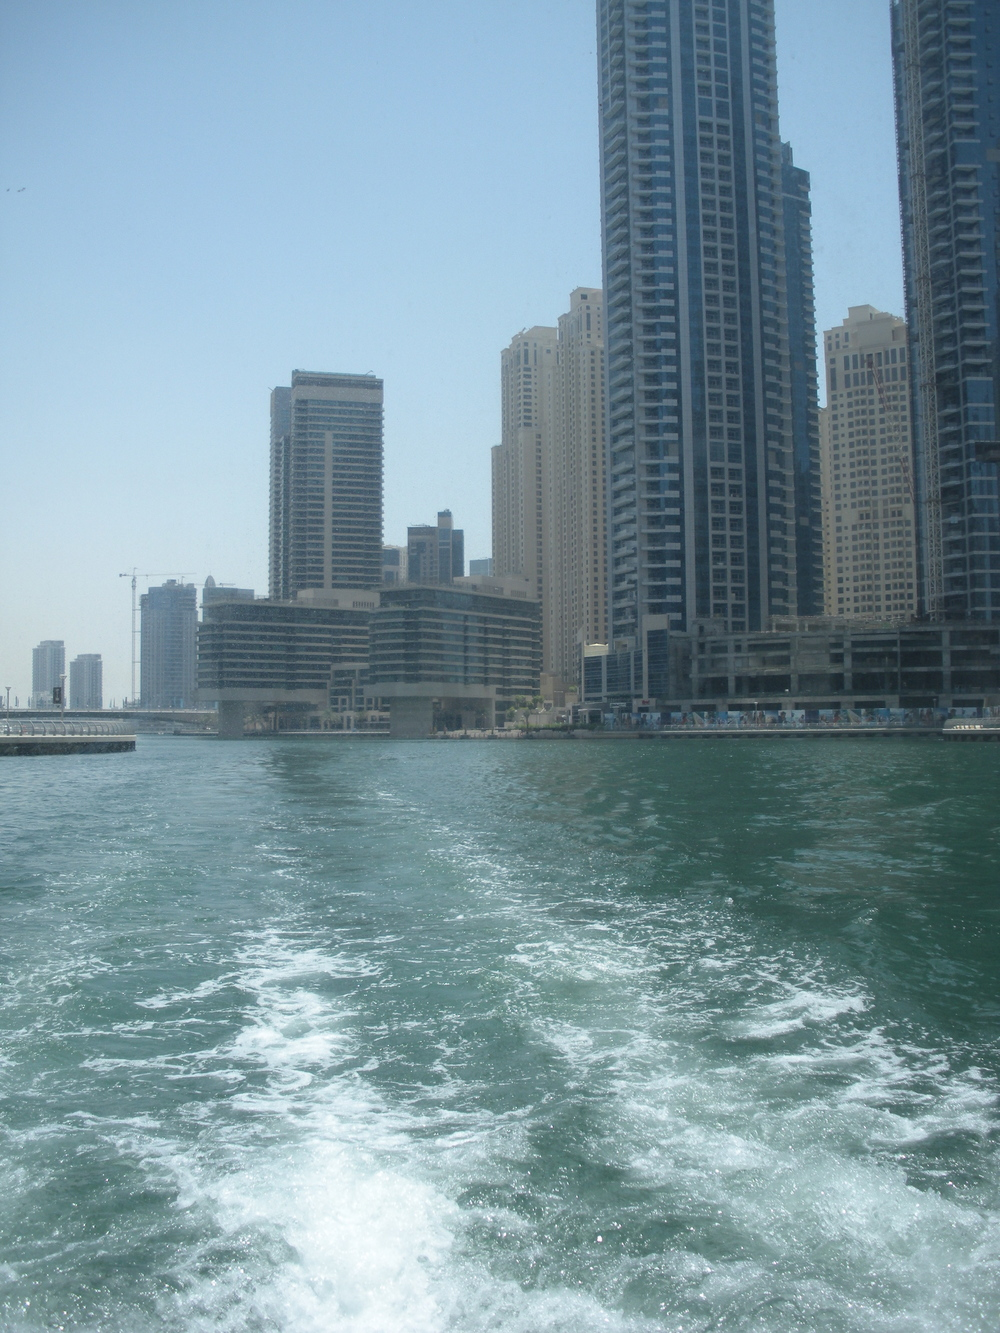 View from the back of the water taxi